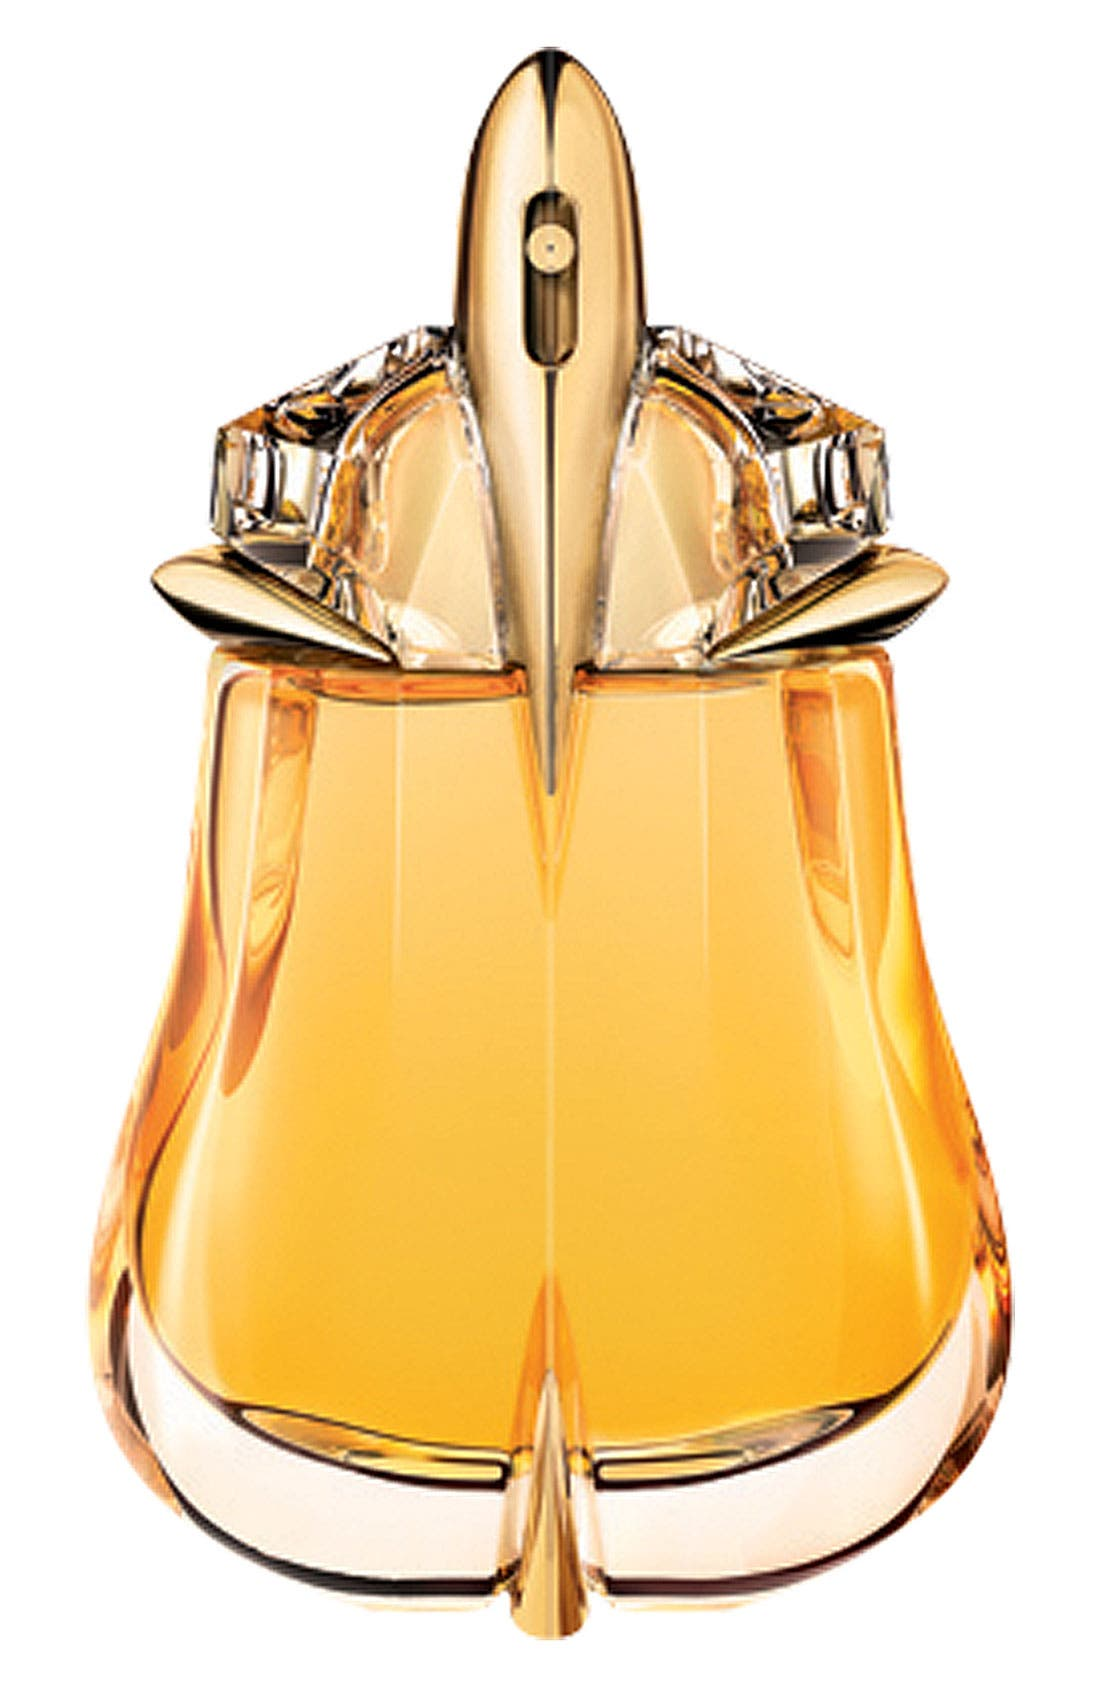 Alien Essence Absolue by Mugler Fragrance